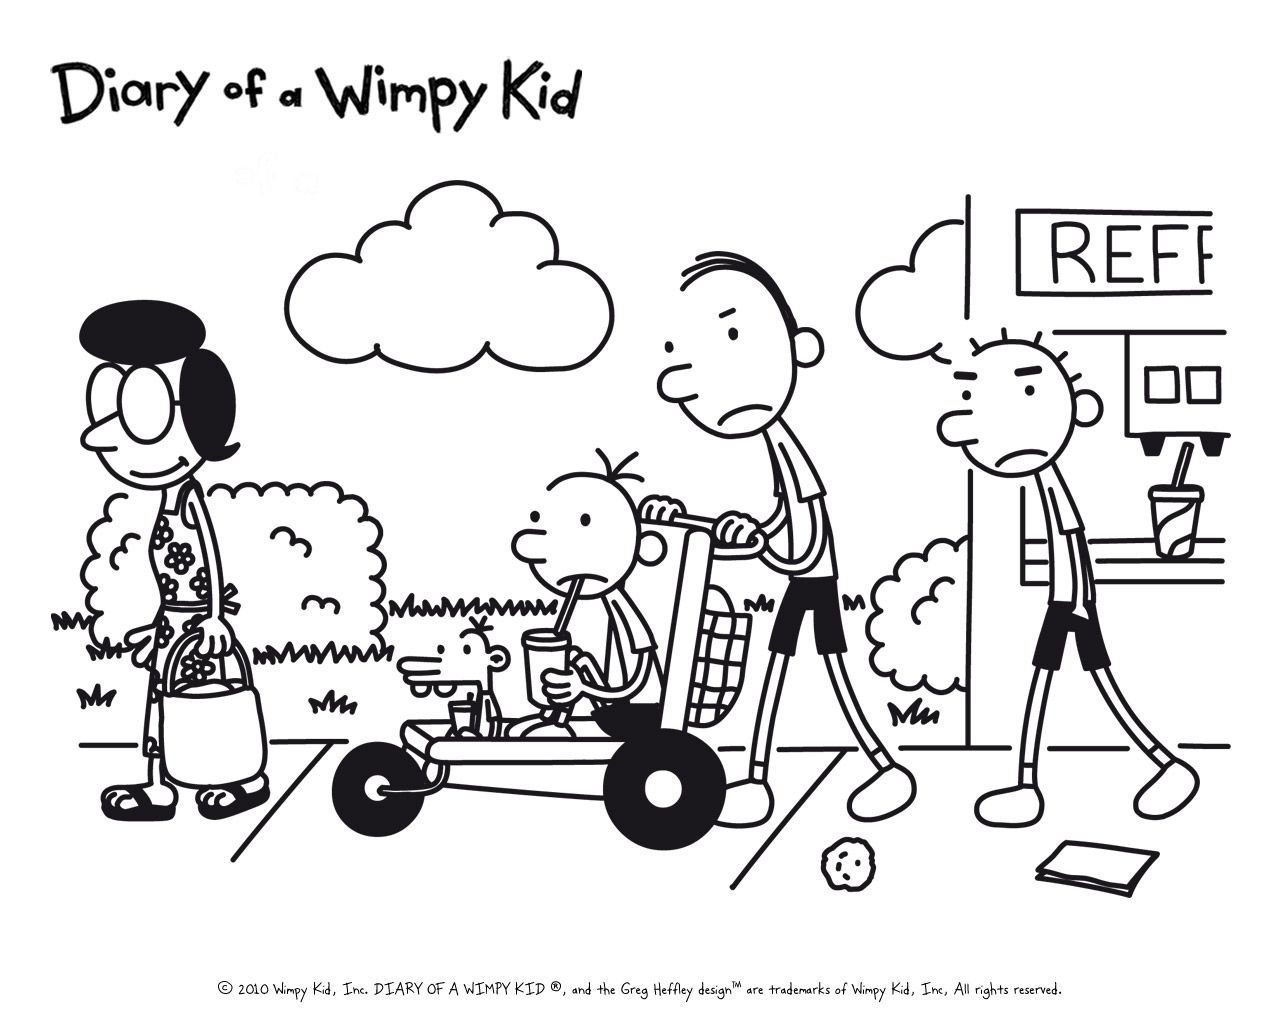 Diary Of A Wimpy Kid Wallpapers Top Free Diary Of A Wimpy Kid